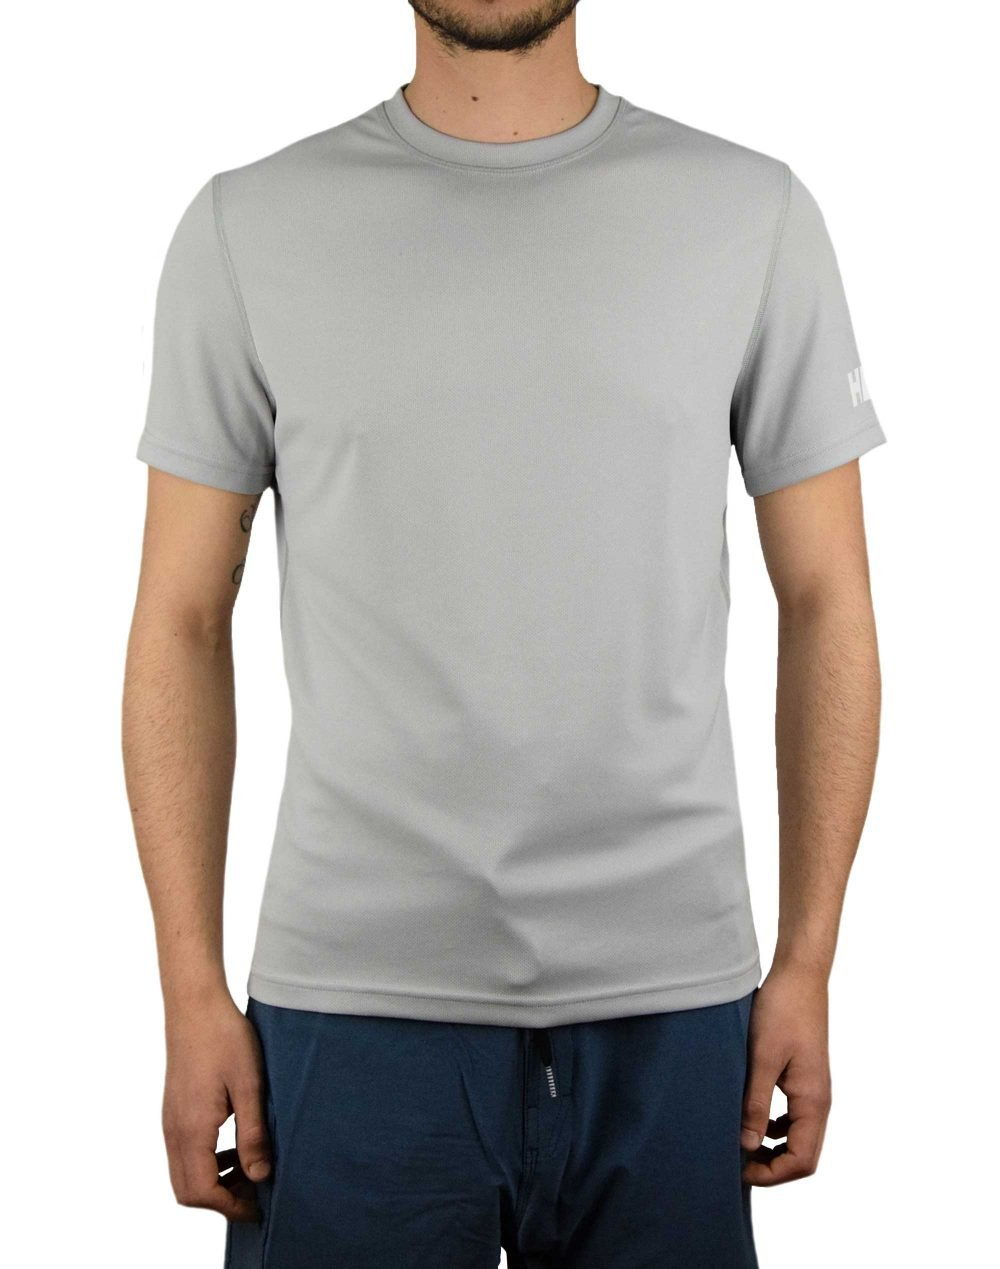 Helly Hansen Tech T-shirt (48363-980) Light Grey